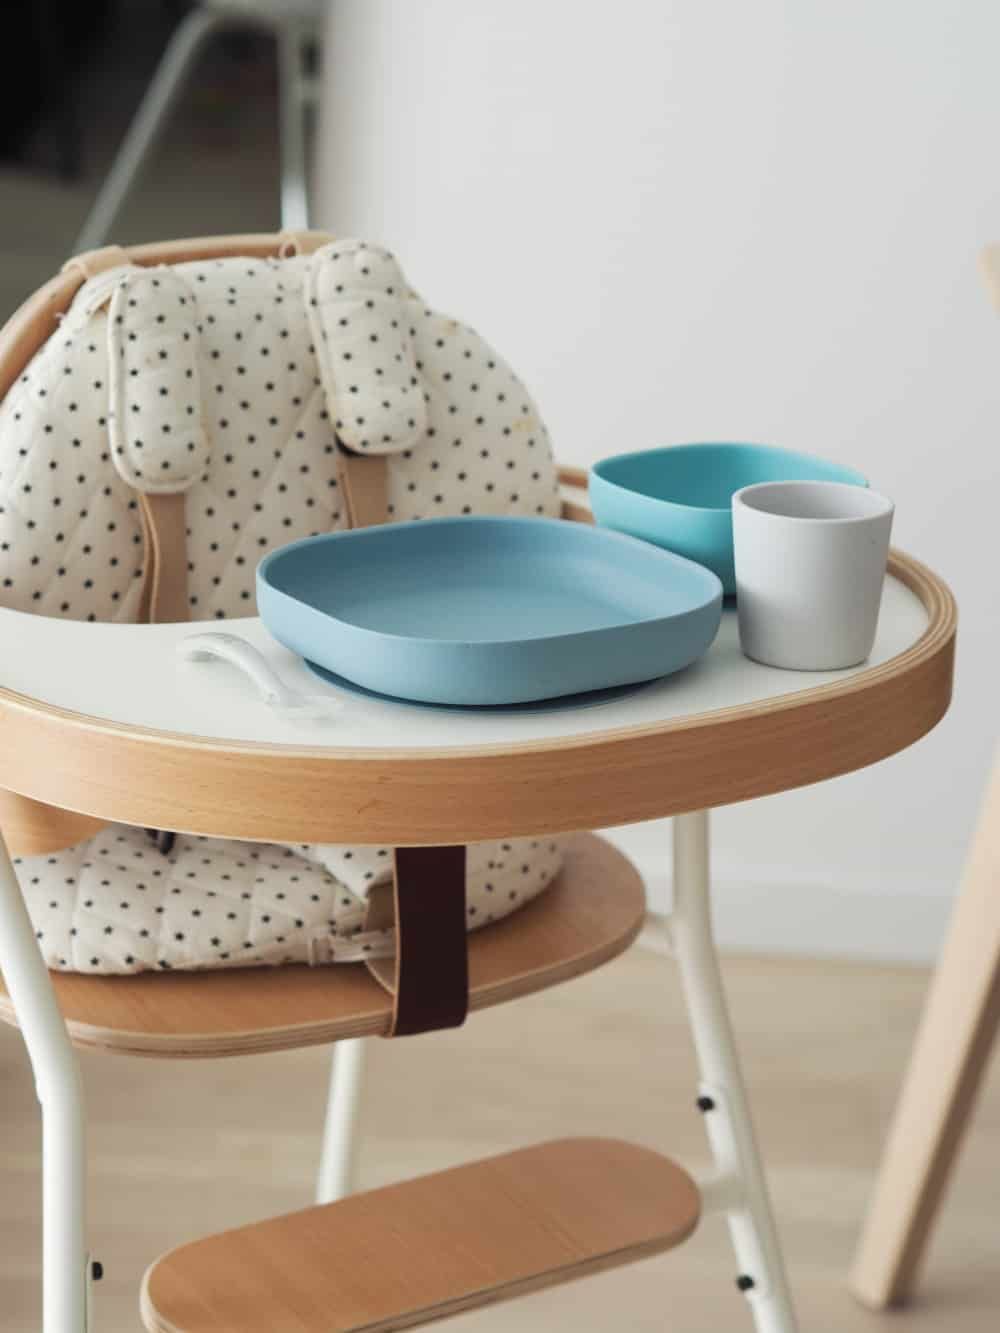 Beaba Silicone Suction meal set in rain on high chair